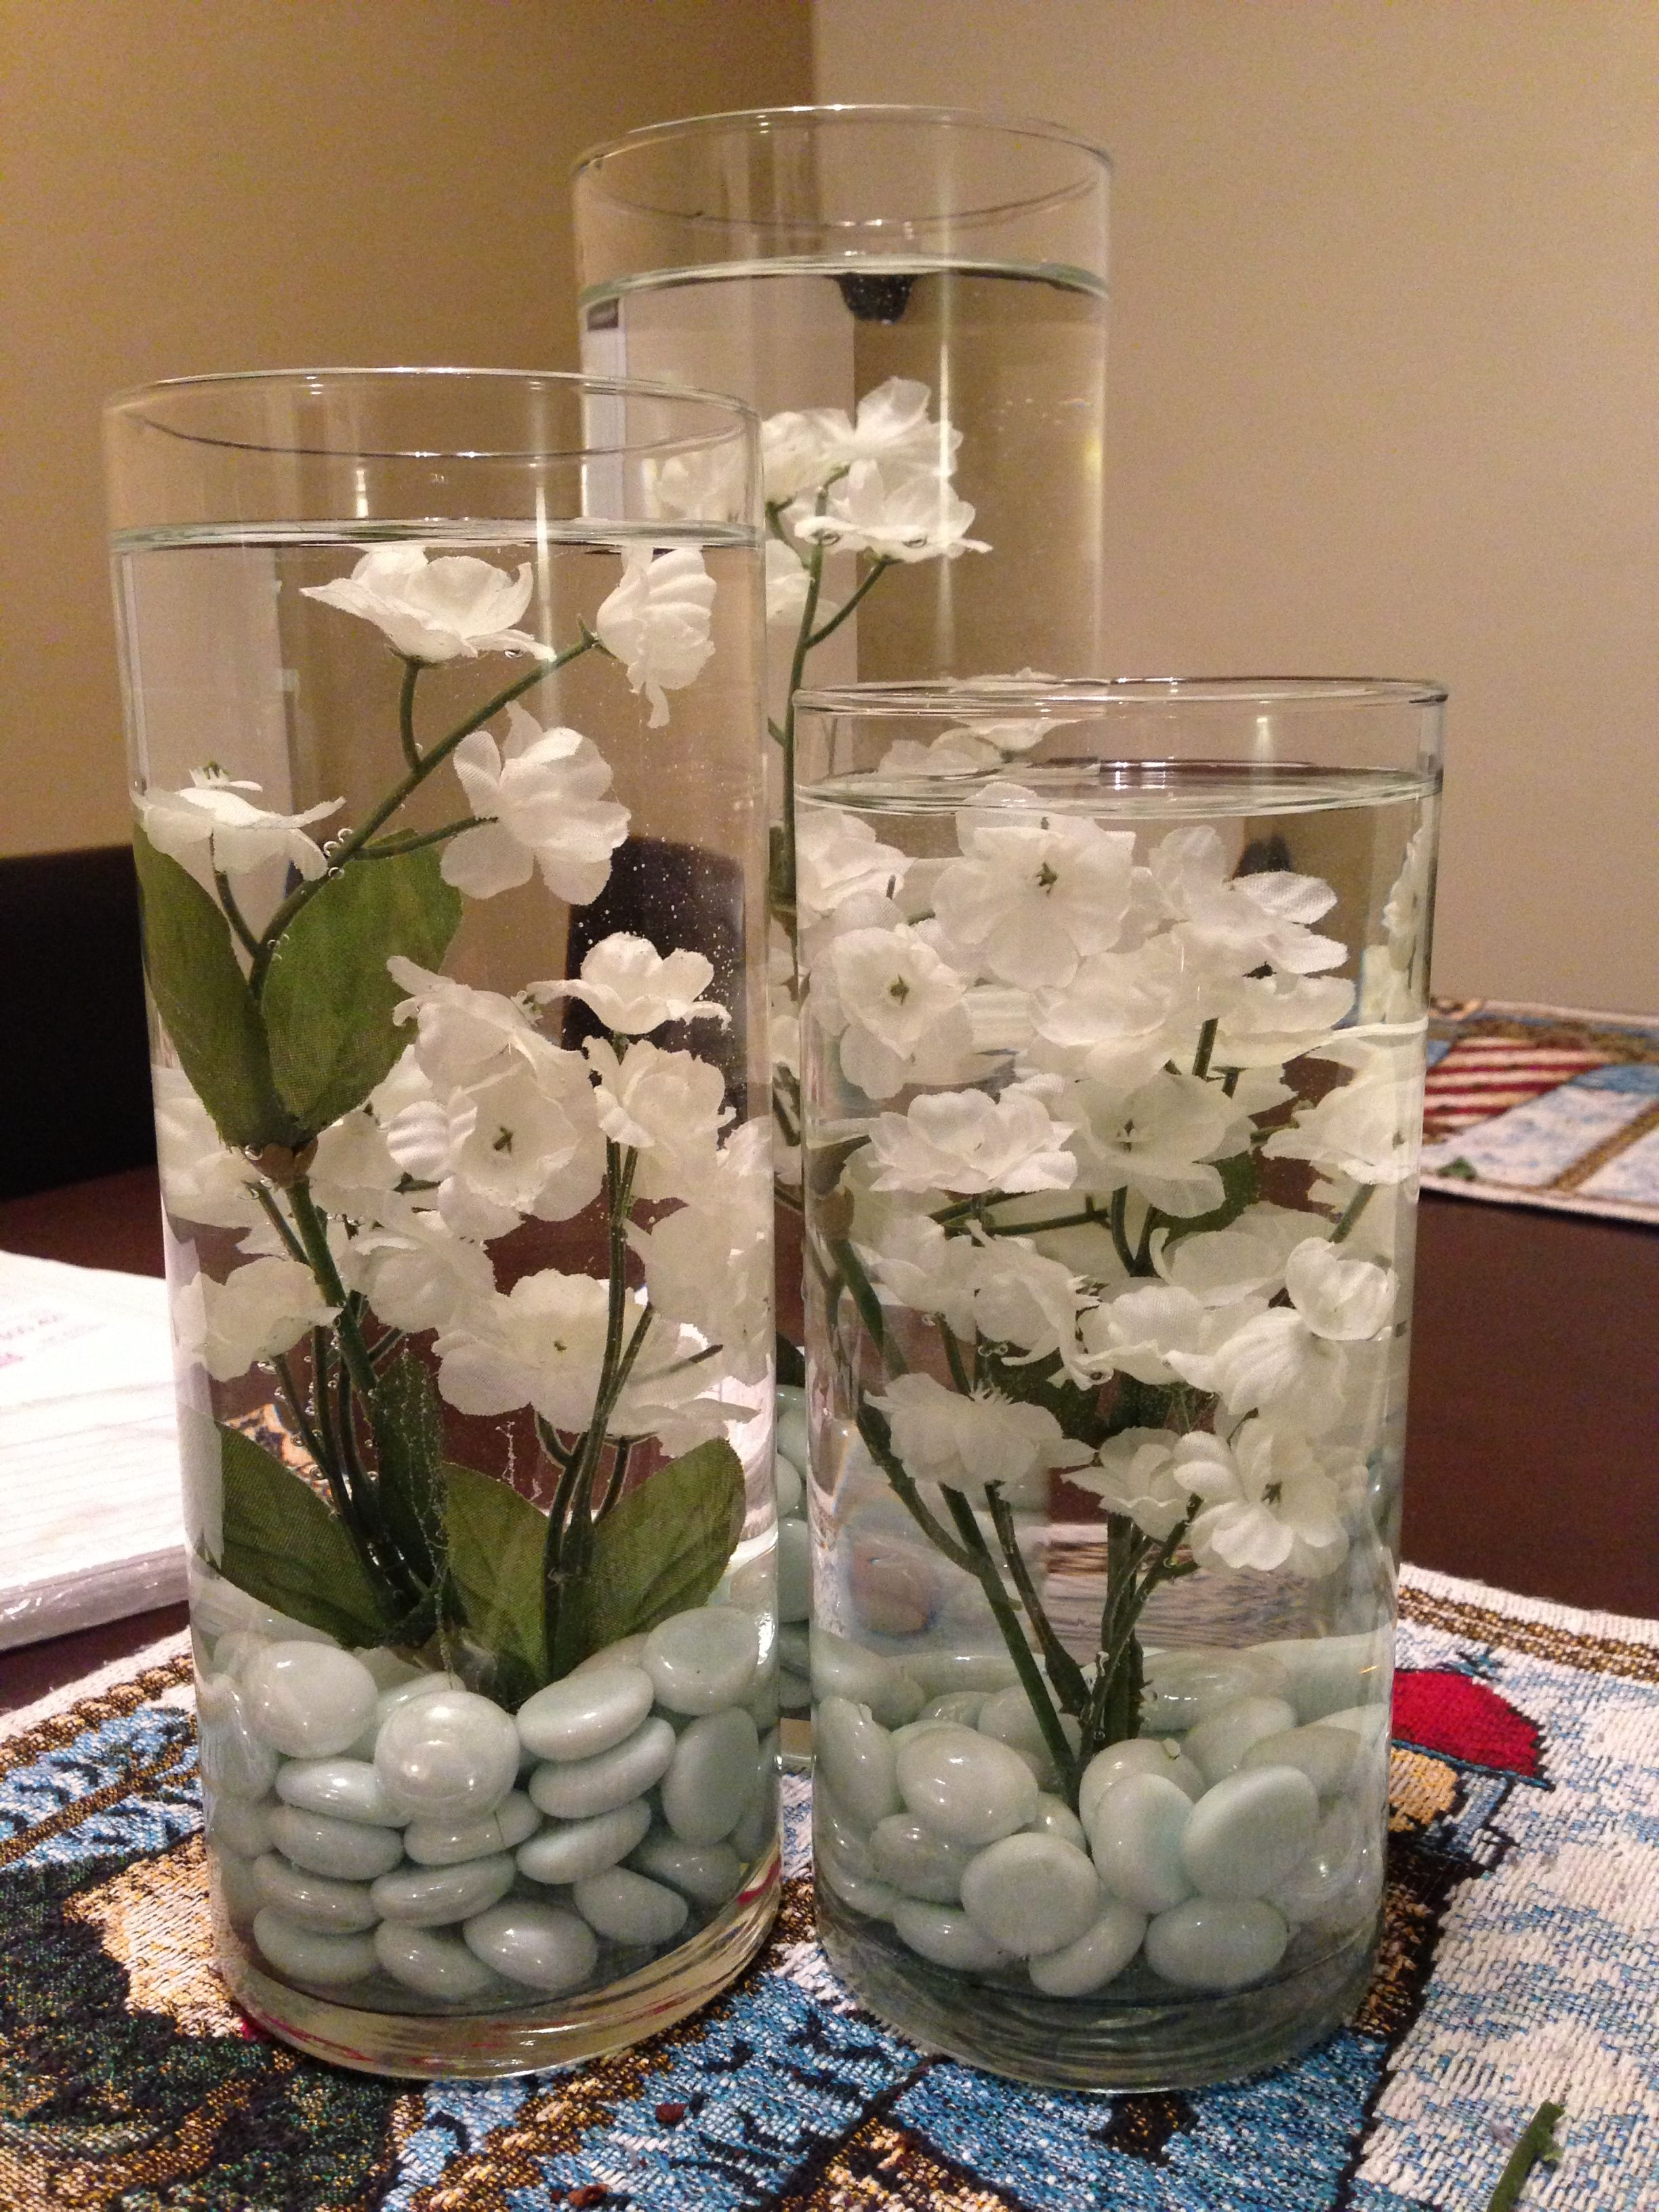 Dining table candle centerpieces - Diy Dining Table Centerpiece It Was So Easy Just Got The Supplies At Michael S